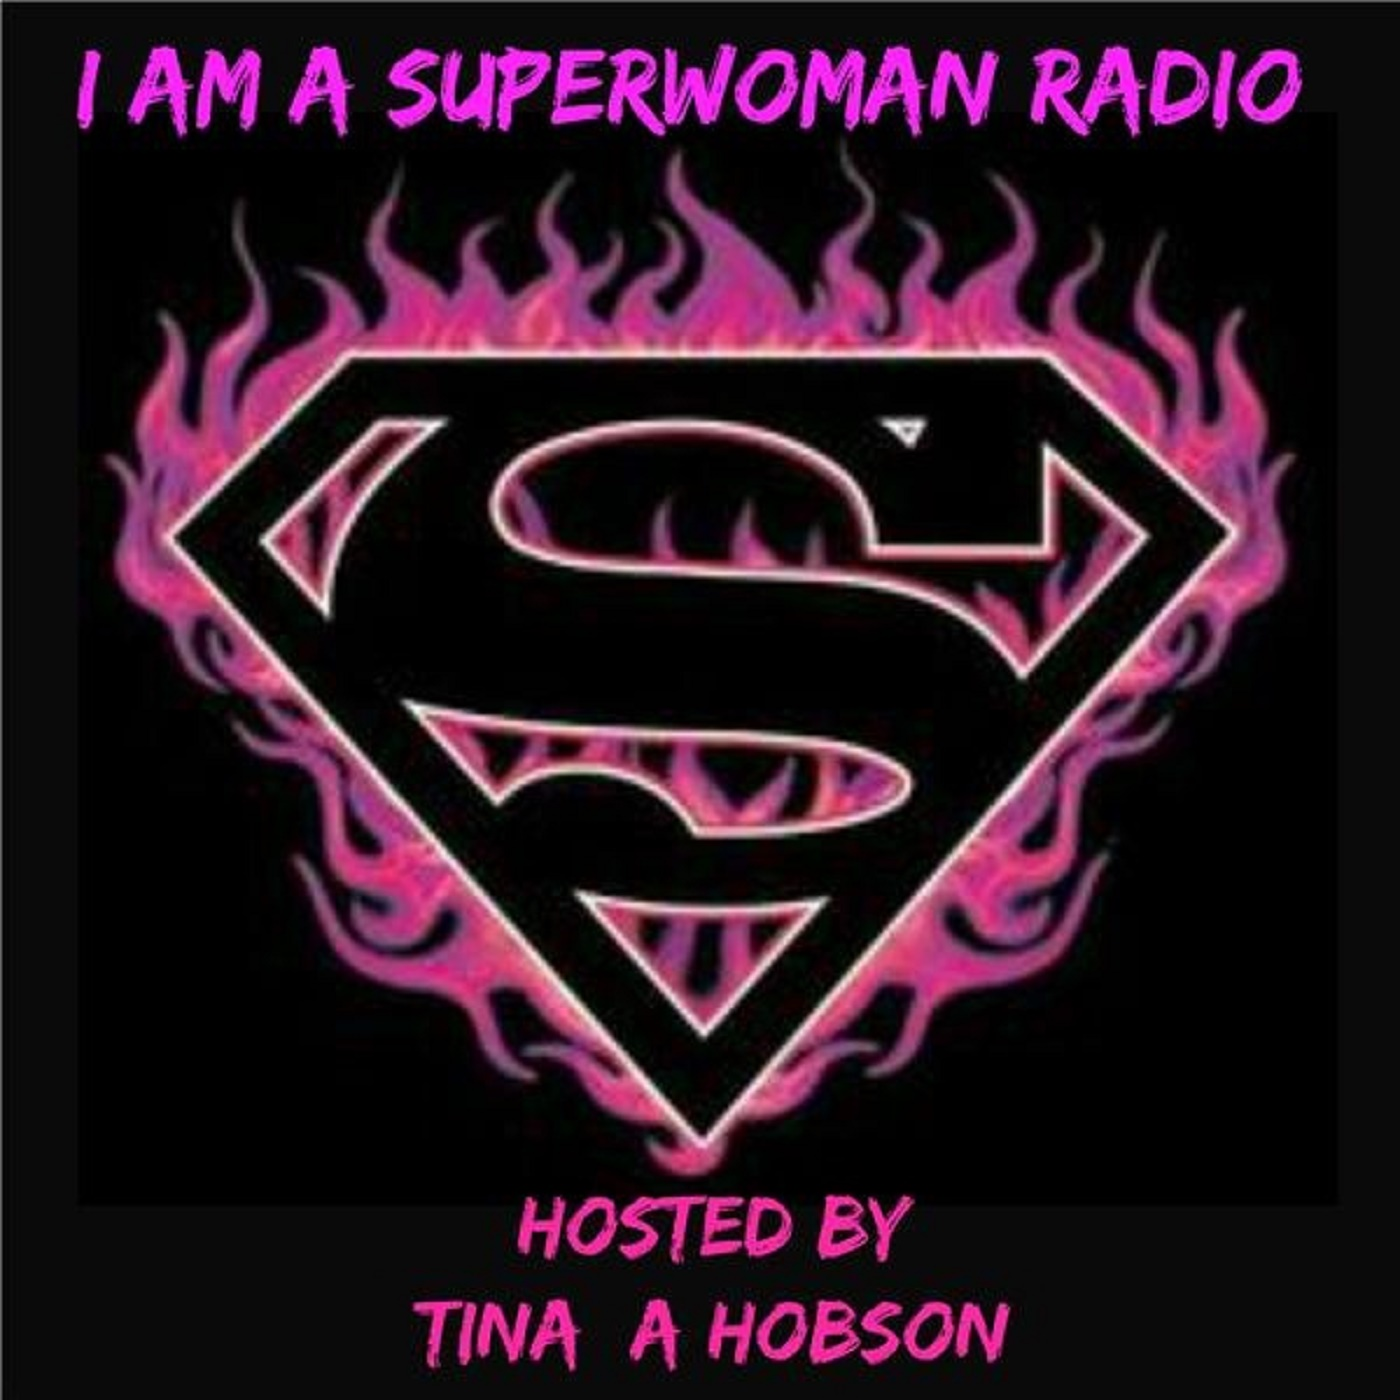 I Am A Superwoman Radio with Tina Hobson